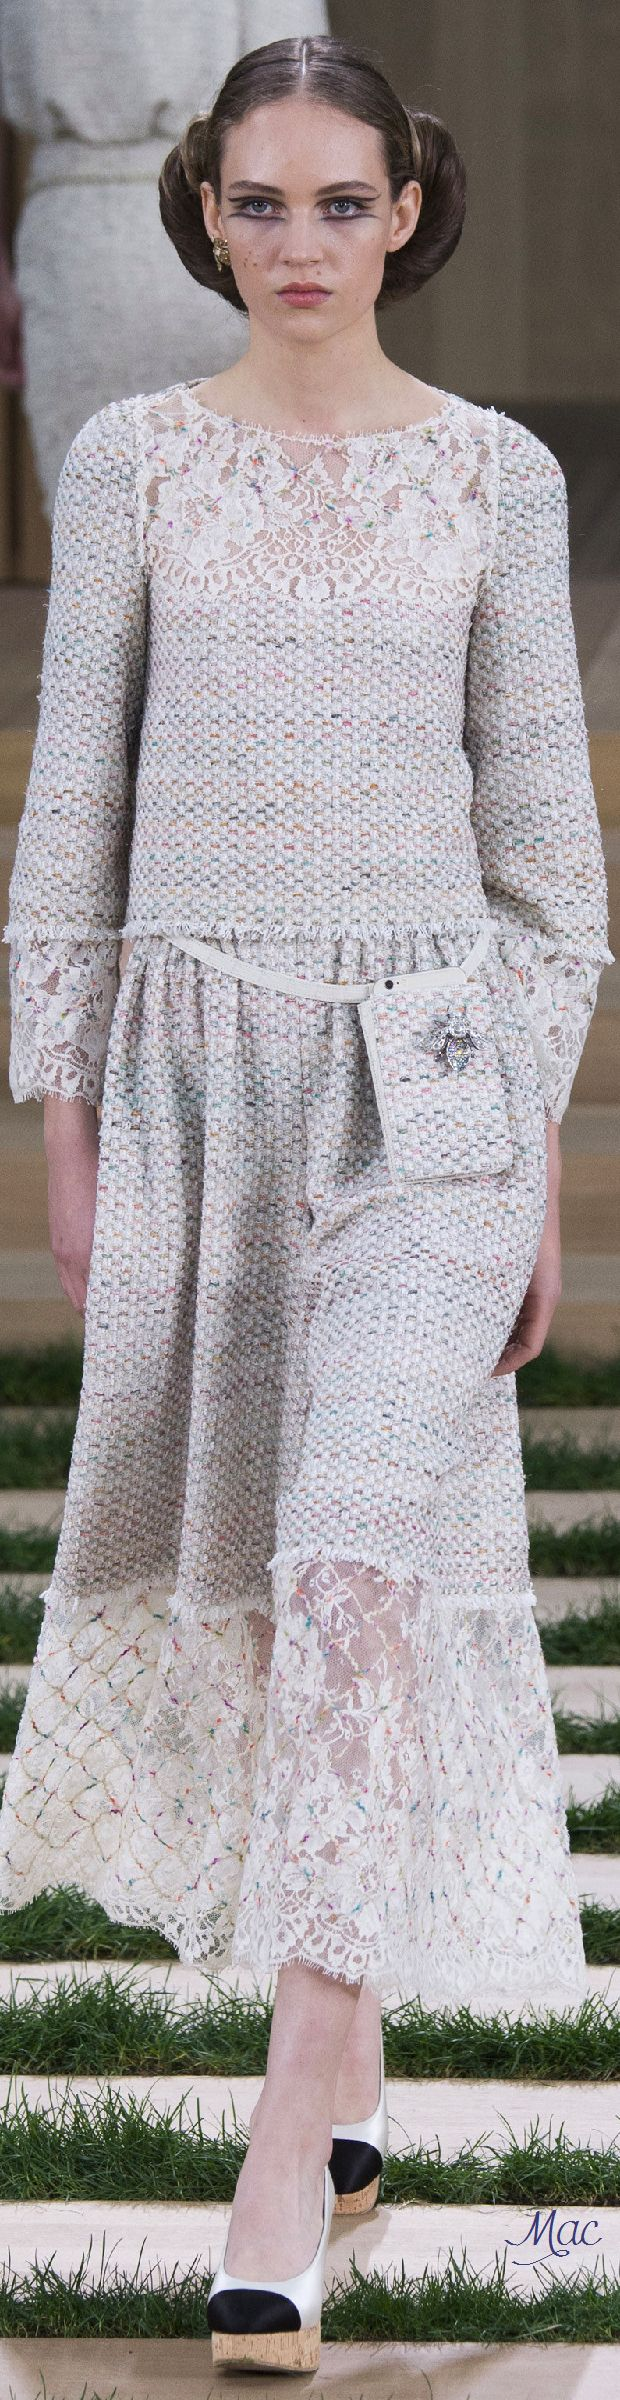 Spring 2016 Haute Couture Chanel